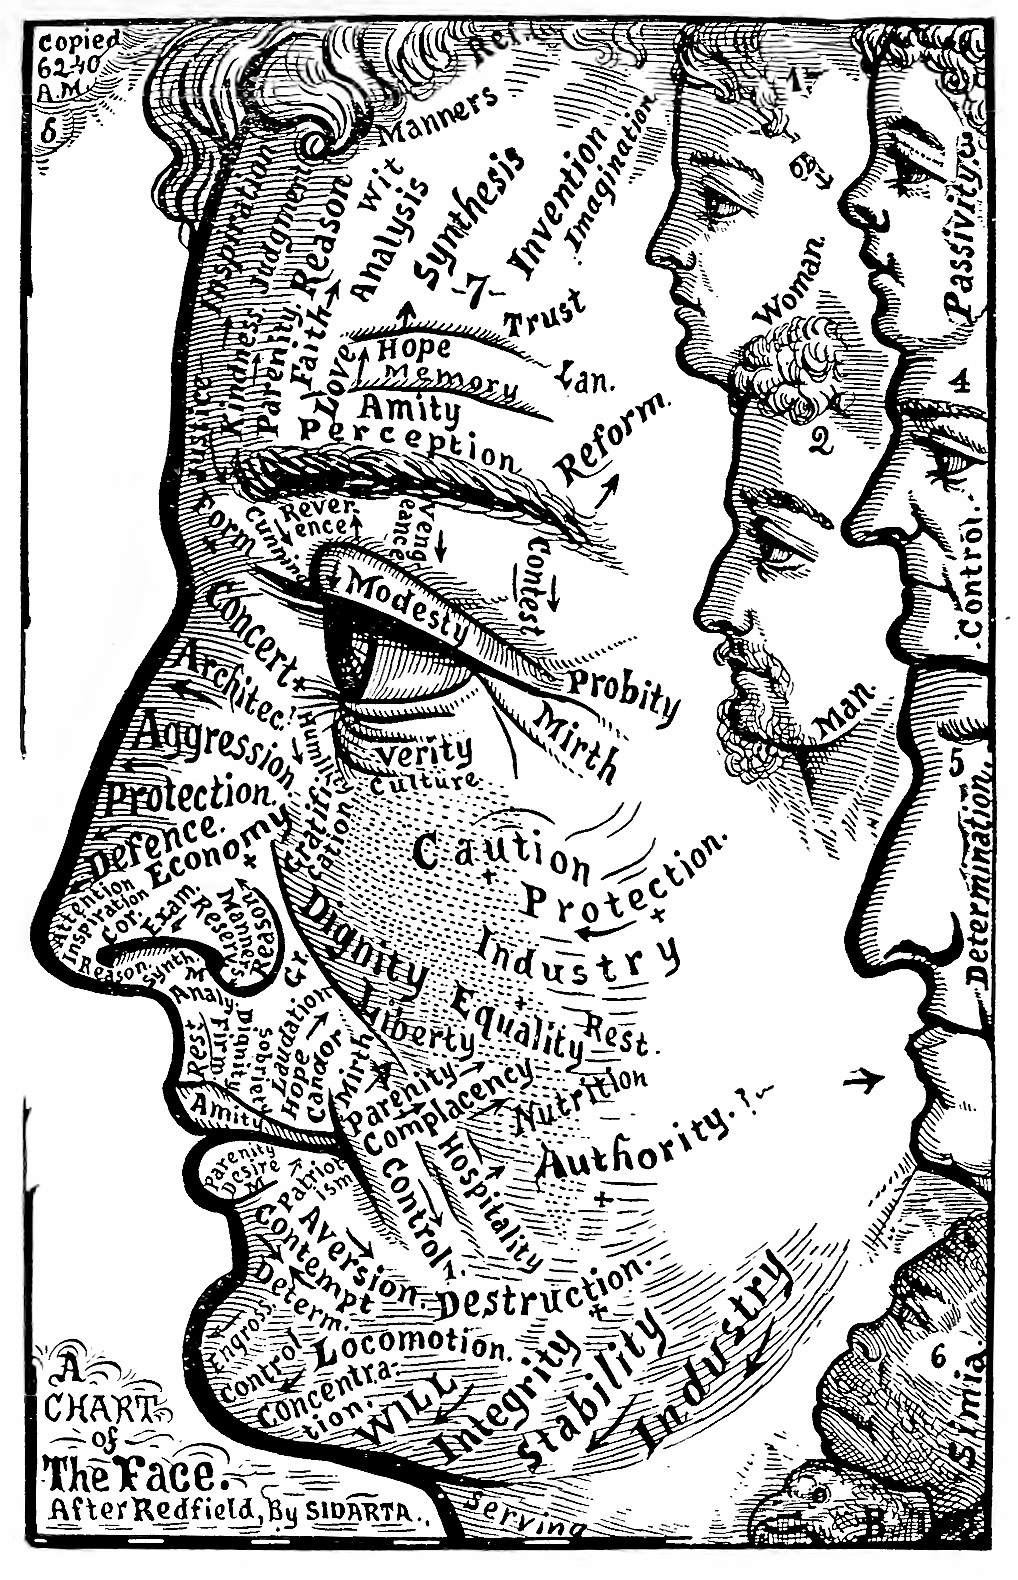 35_chart_of_the_face_1884.jpg